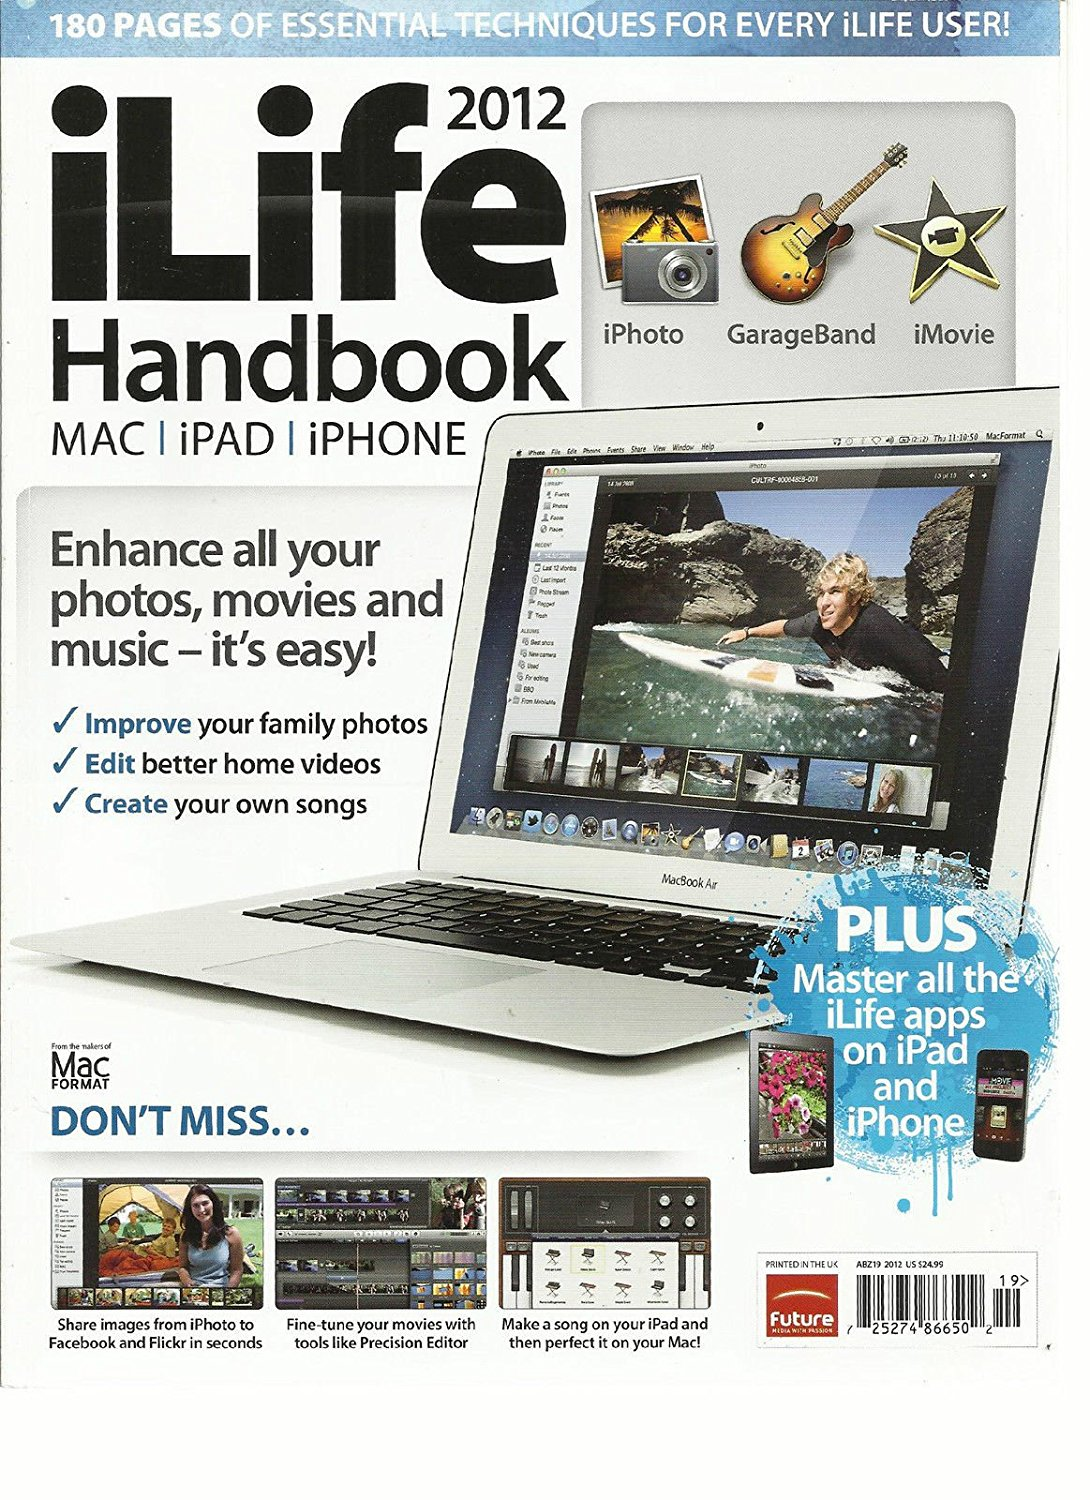 iLIFE HANDBOOK MAC, iPAD, iPHONE,2012 (ENHANCE ALL YOUR PHOTOS, MOVIES AND MUSIC